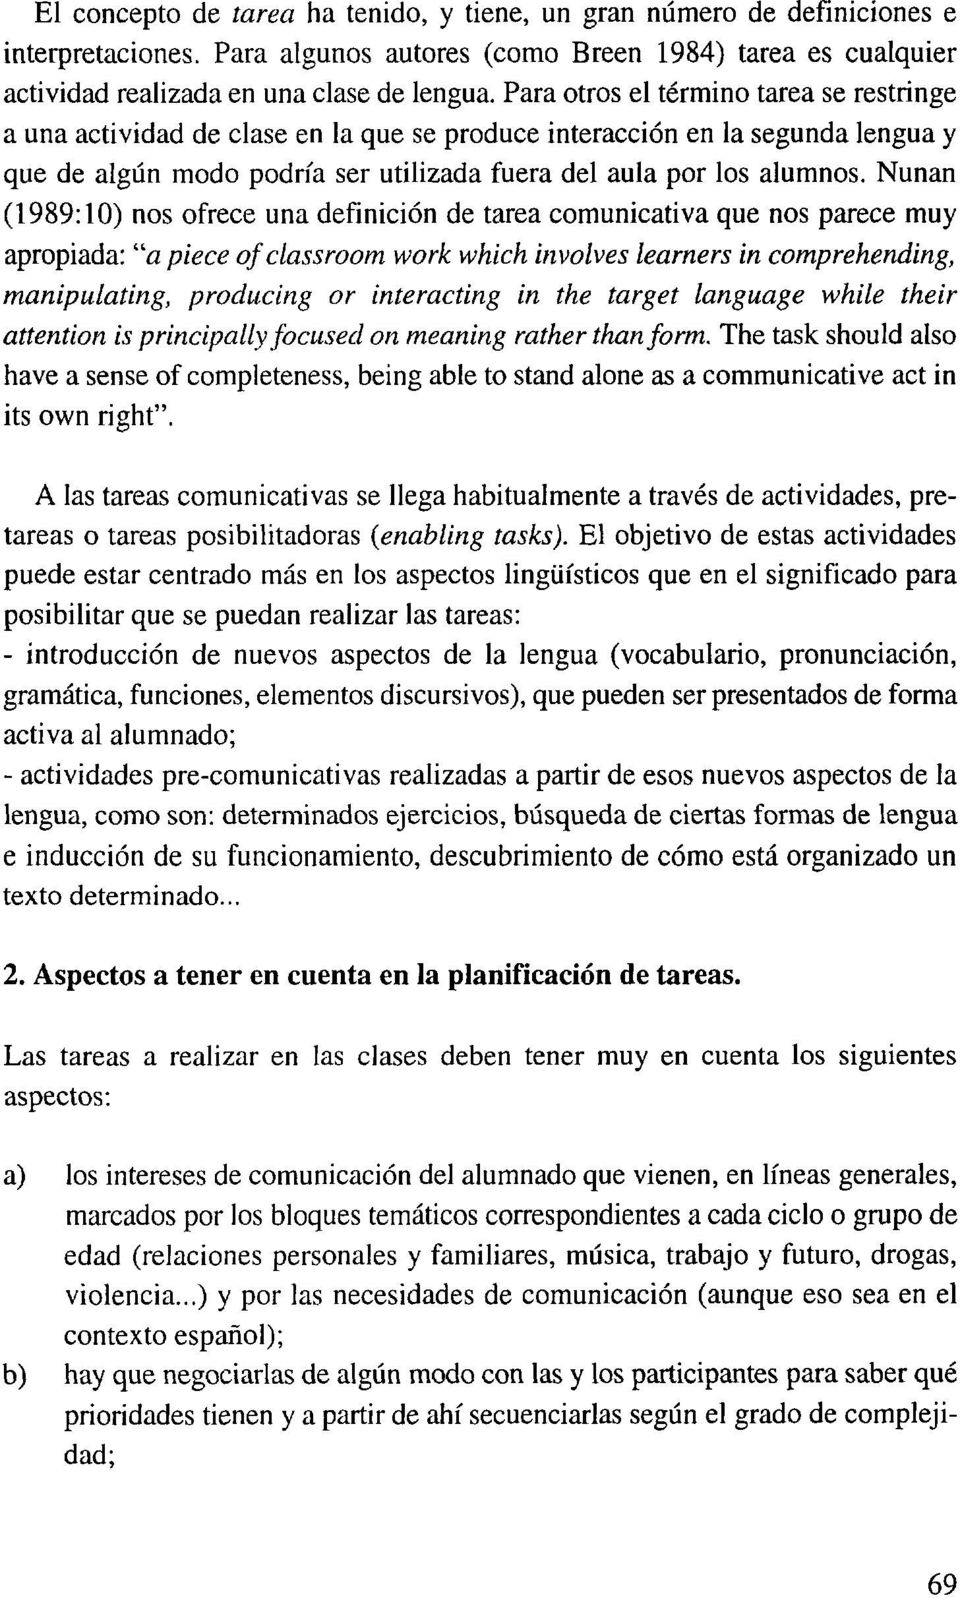 "Nunan (1989:10) nos ofrece una definición de tarea comunicativa que nos parece muy apropiada: ""a piece of dassroom work which involves learners in comprehending, manipulating, producing or"